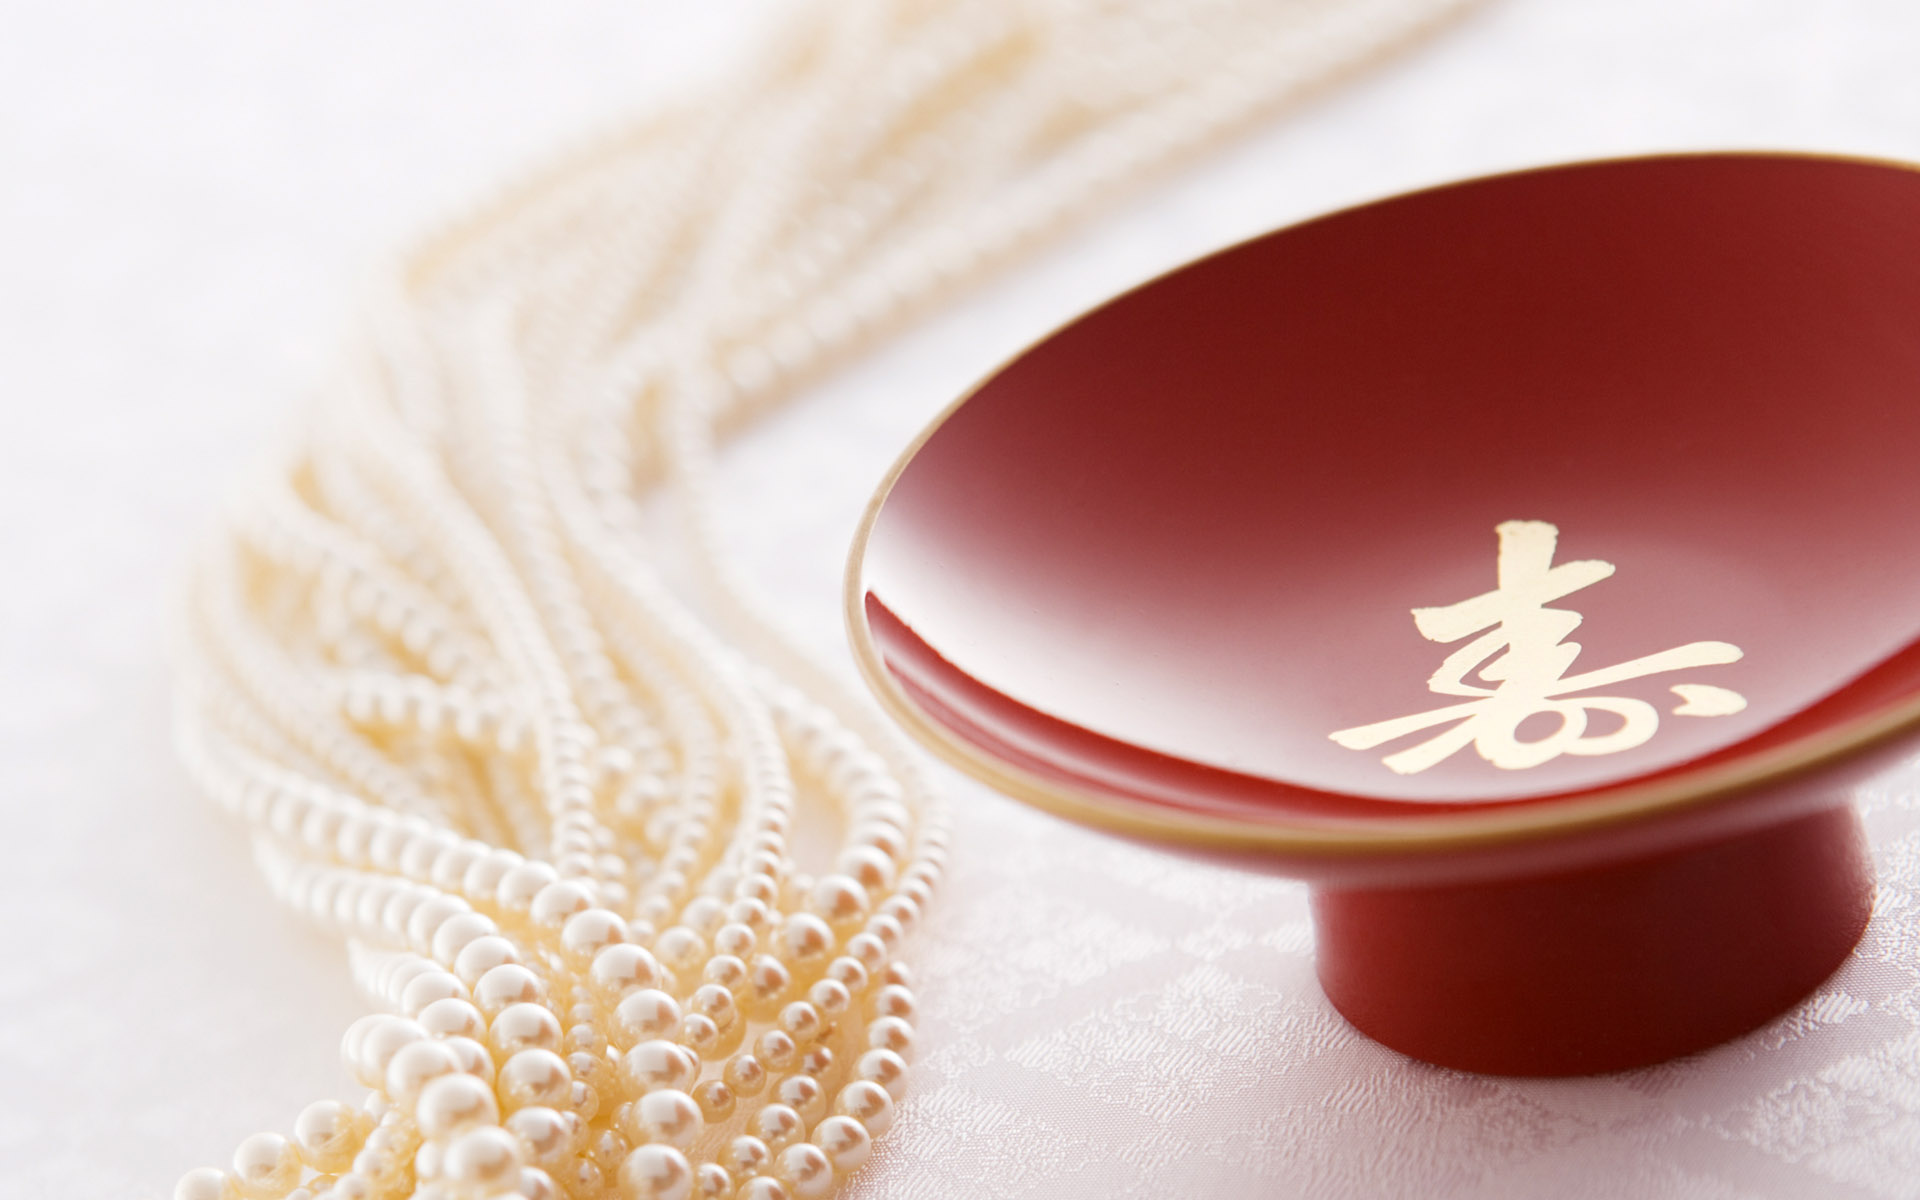 Japanese New Year and cultural material 9334